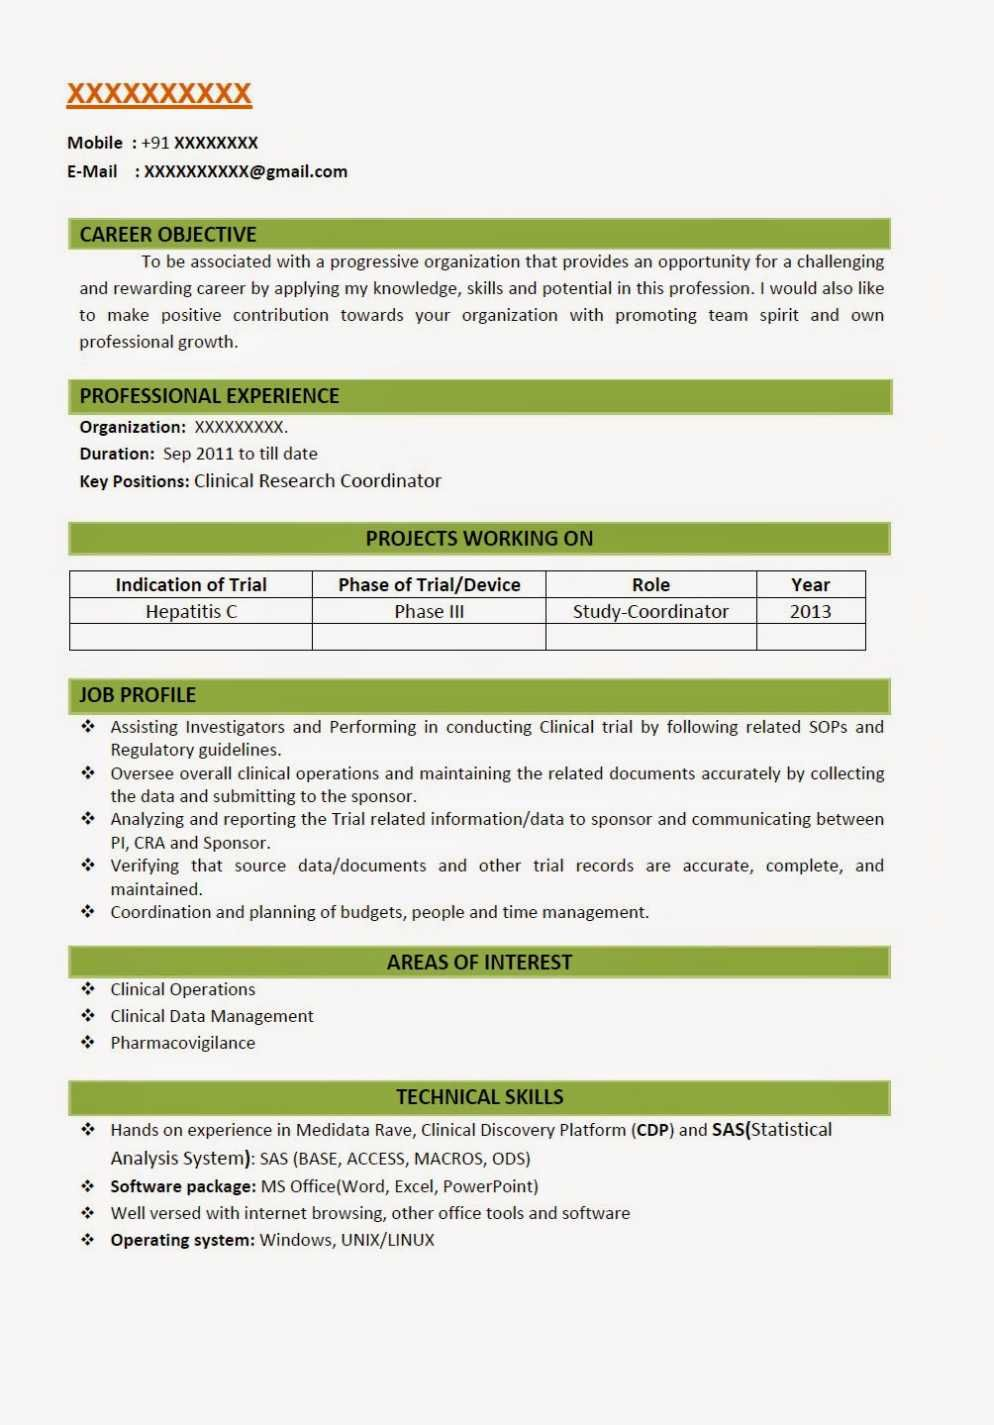 about me essay example sample statement of purpose mba example essay give your - Cv About Me Description